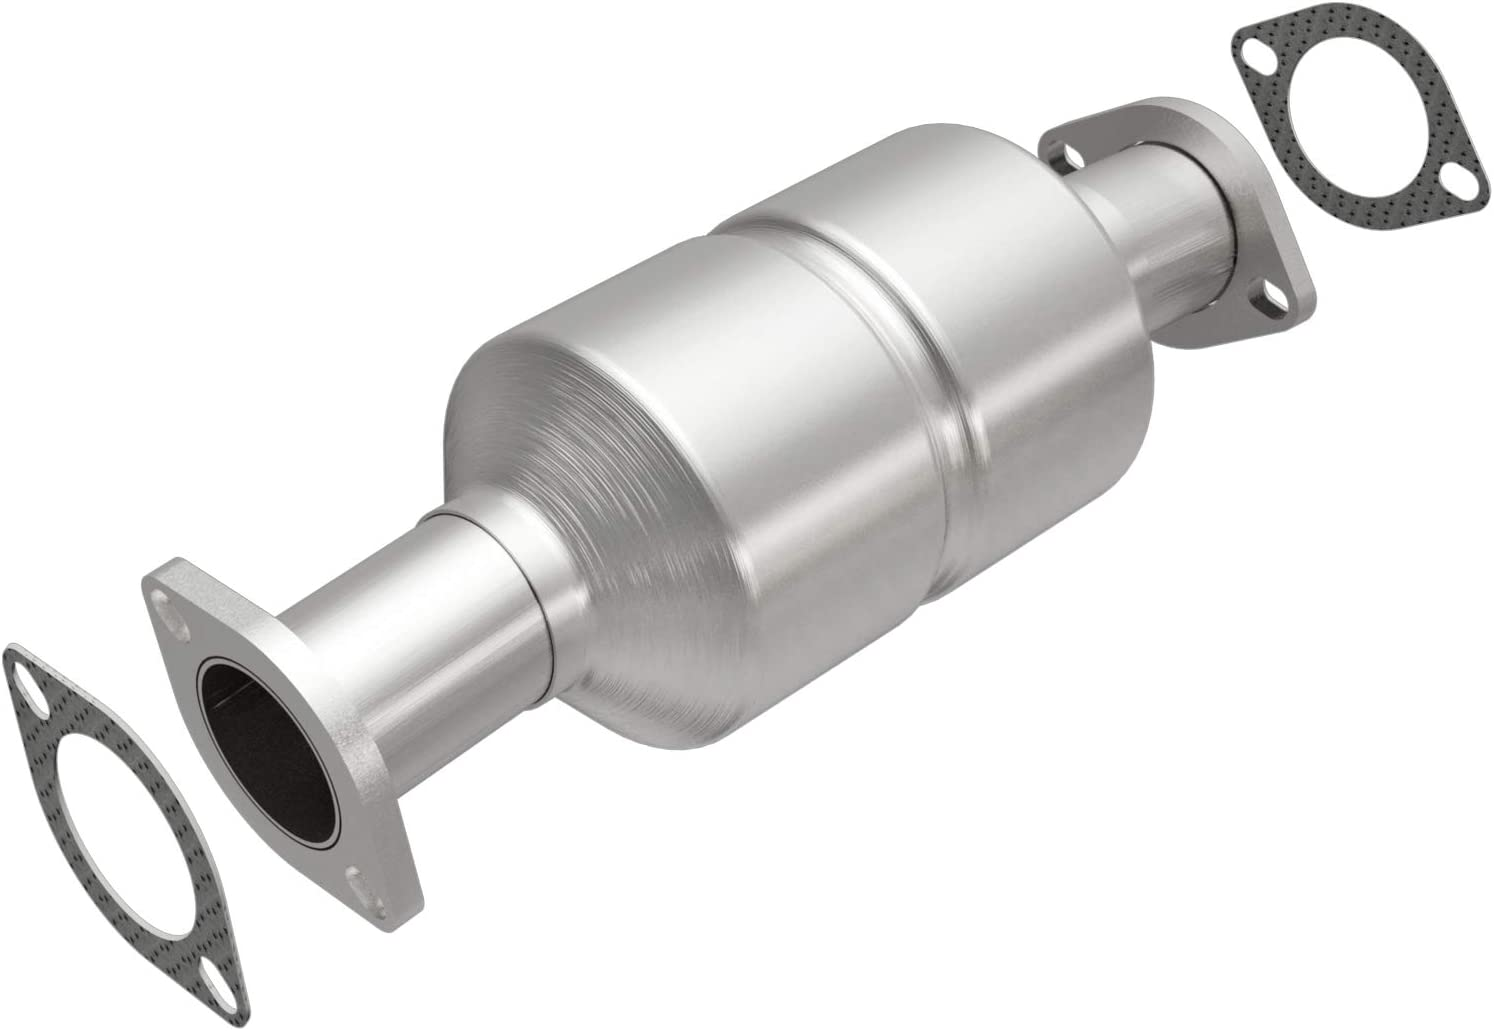 23684 MagnaFlow Stainless Steel Direct-Fit Standard Catalytic Convertor